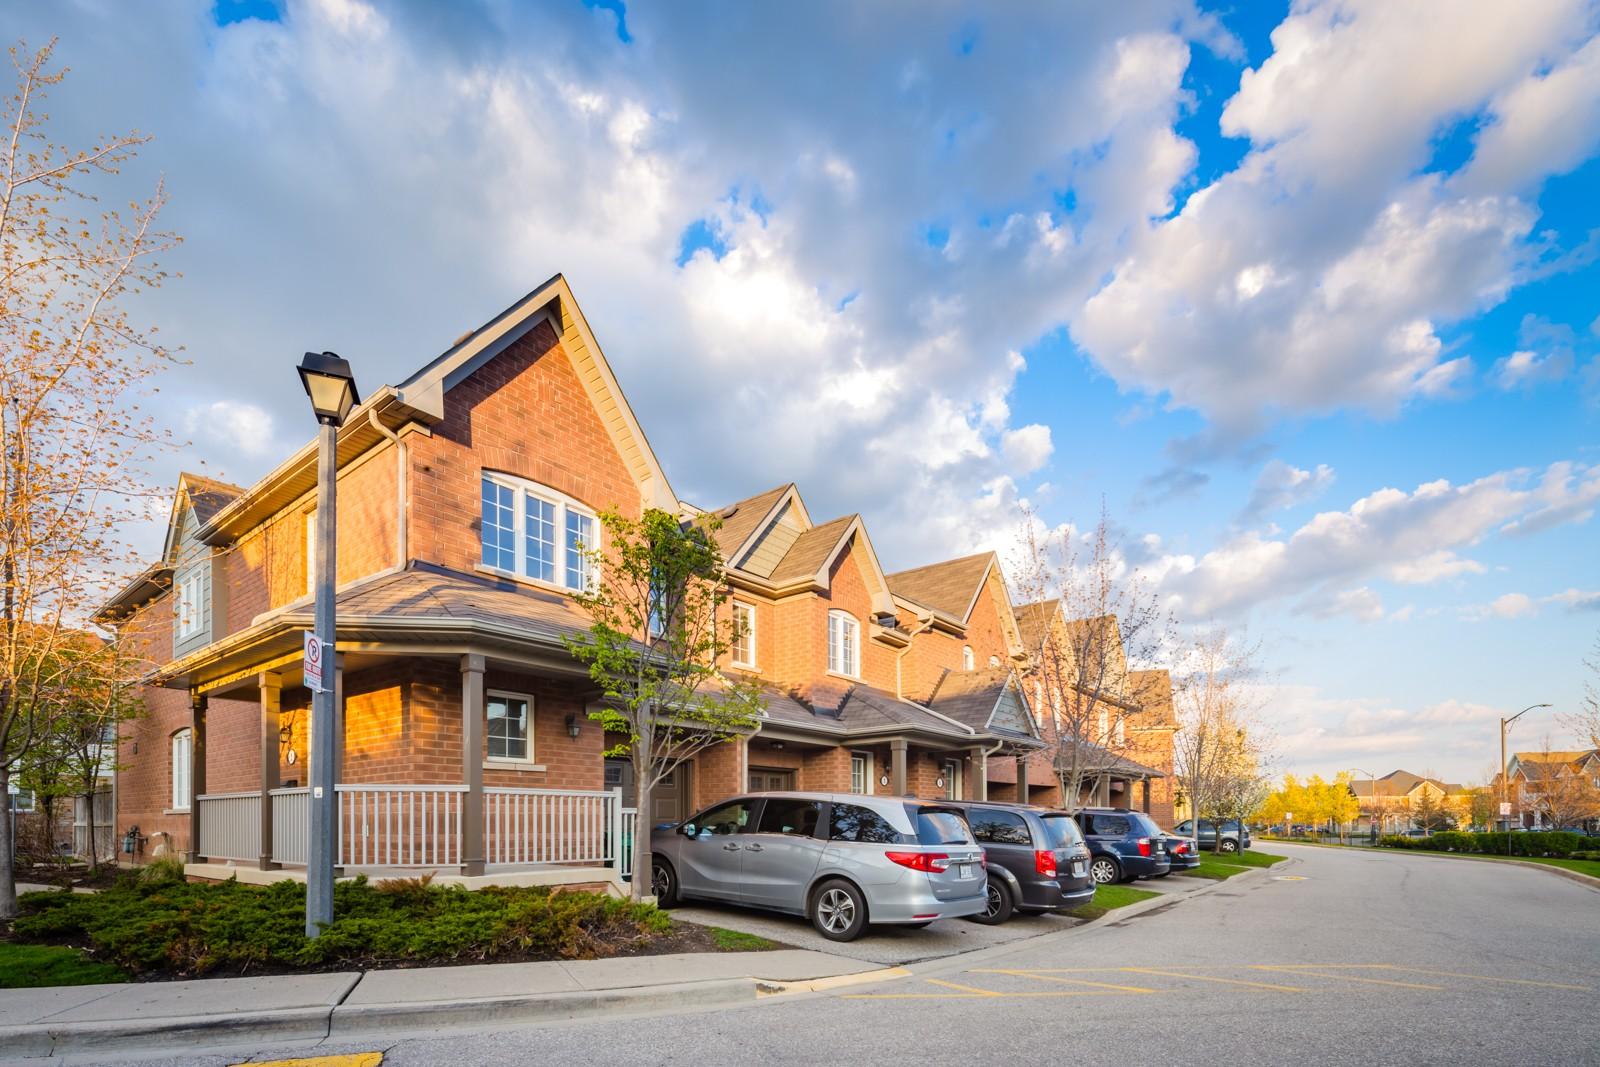 5255 Palmetto Pl Townhouses at 5255 Palmetto Pl, Mississauga 0